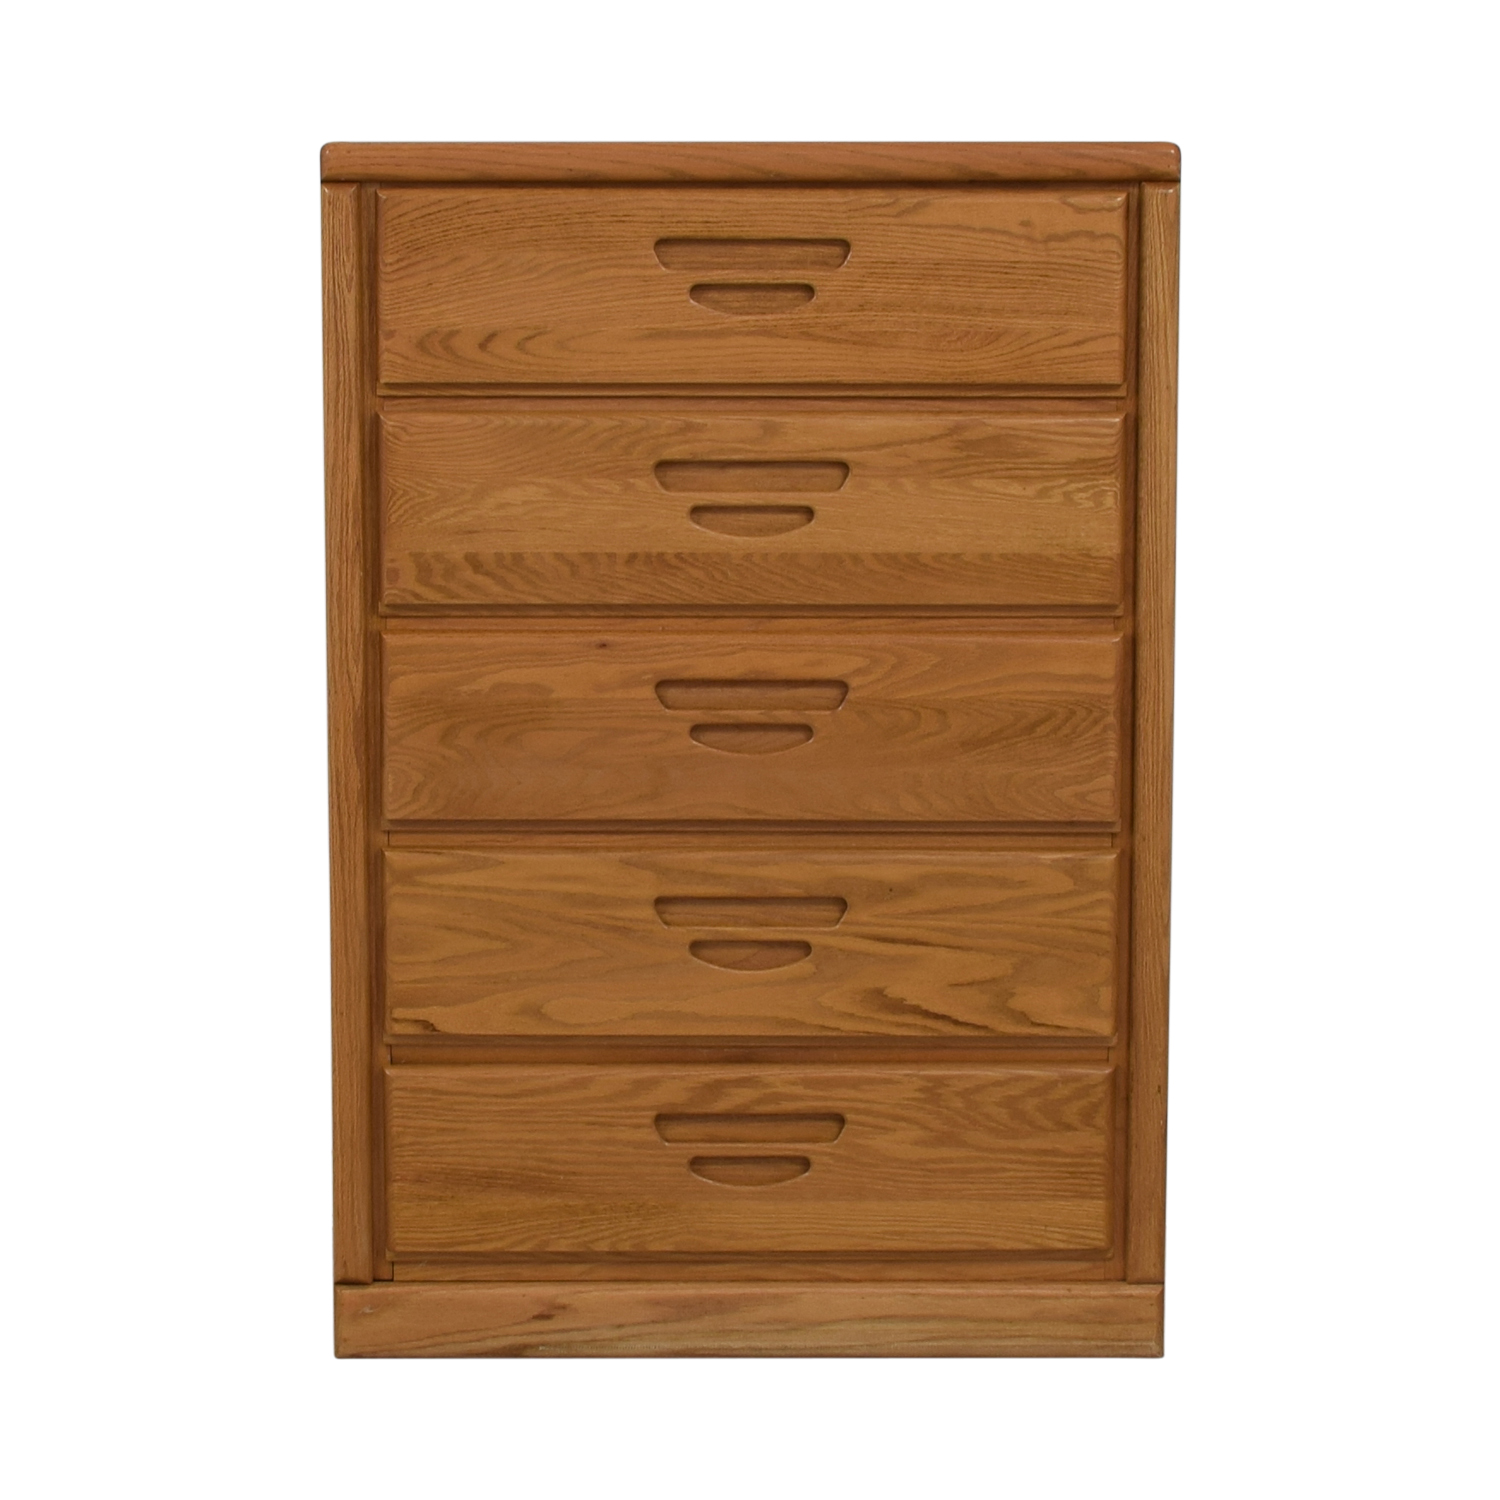 Oak Five-Drawer Tall Dresser dimensions